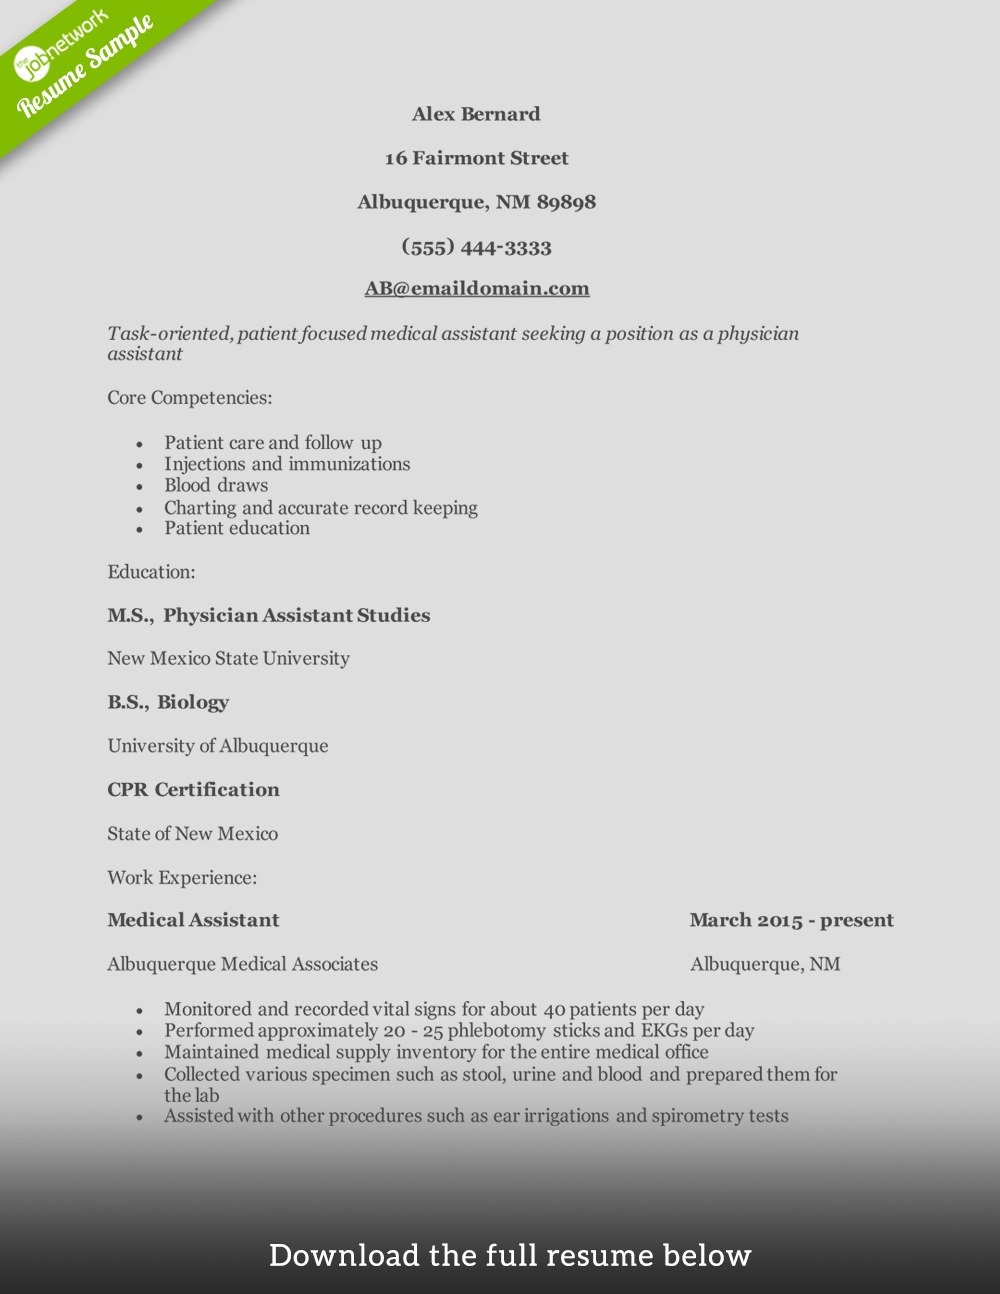 How to Write a Perfect Physician Assistant Resume (Examples Included)